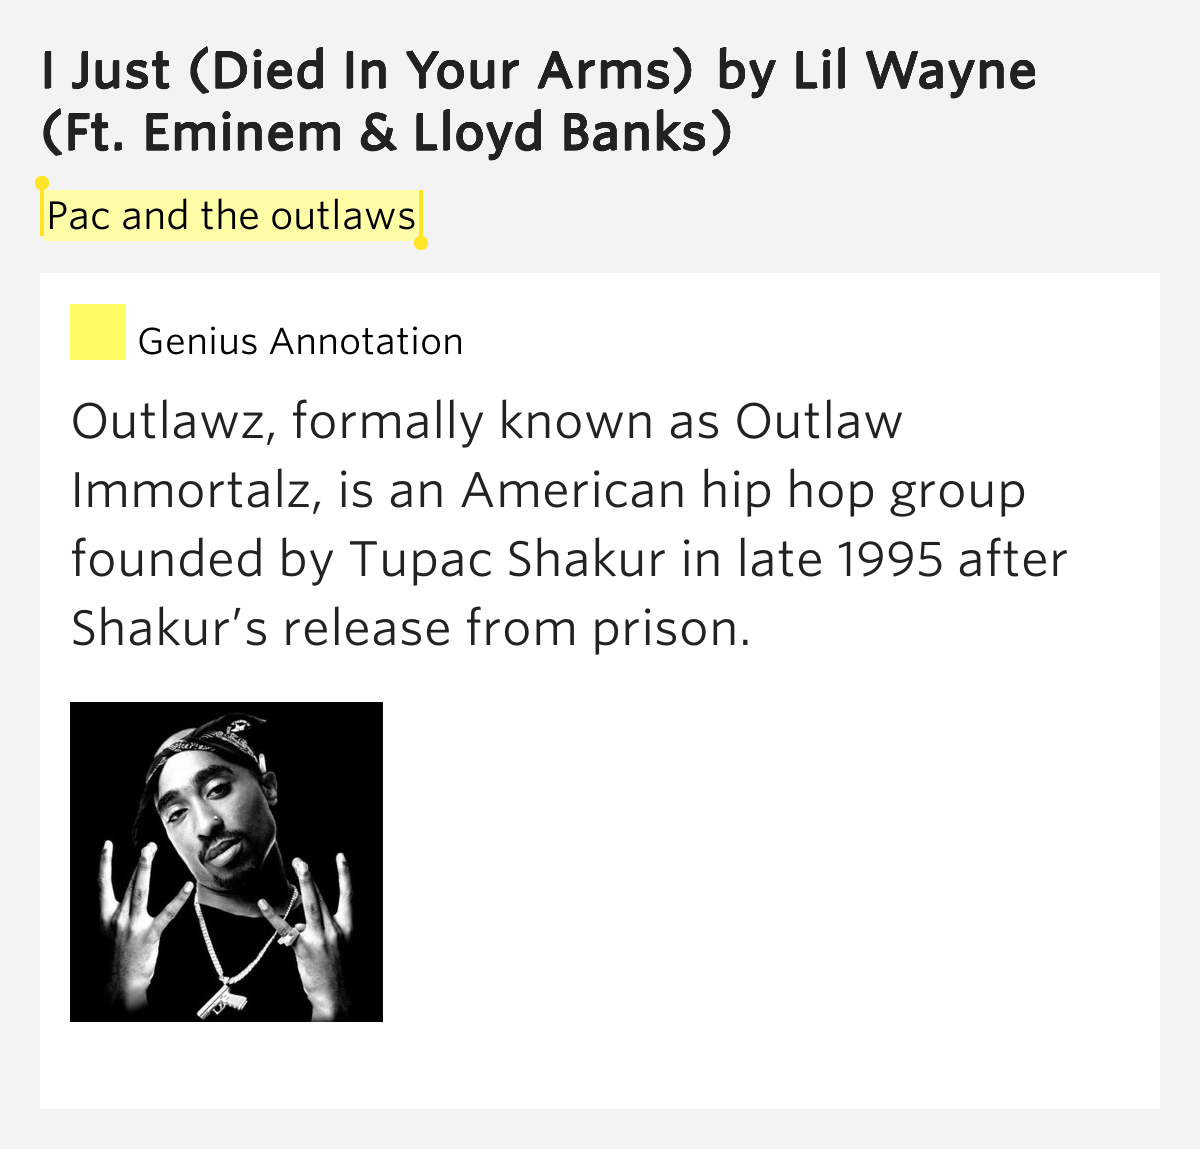 Lyrics died in your arms tonight 2pac songs about died in ...